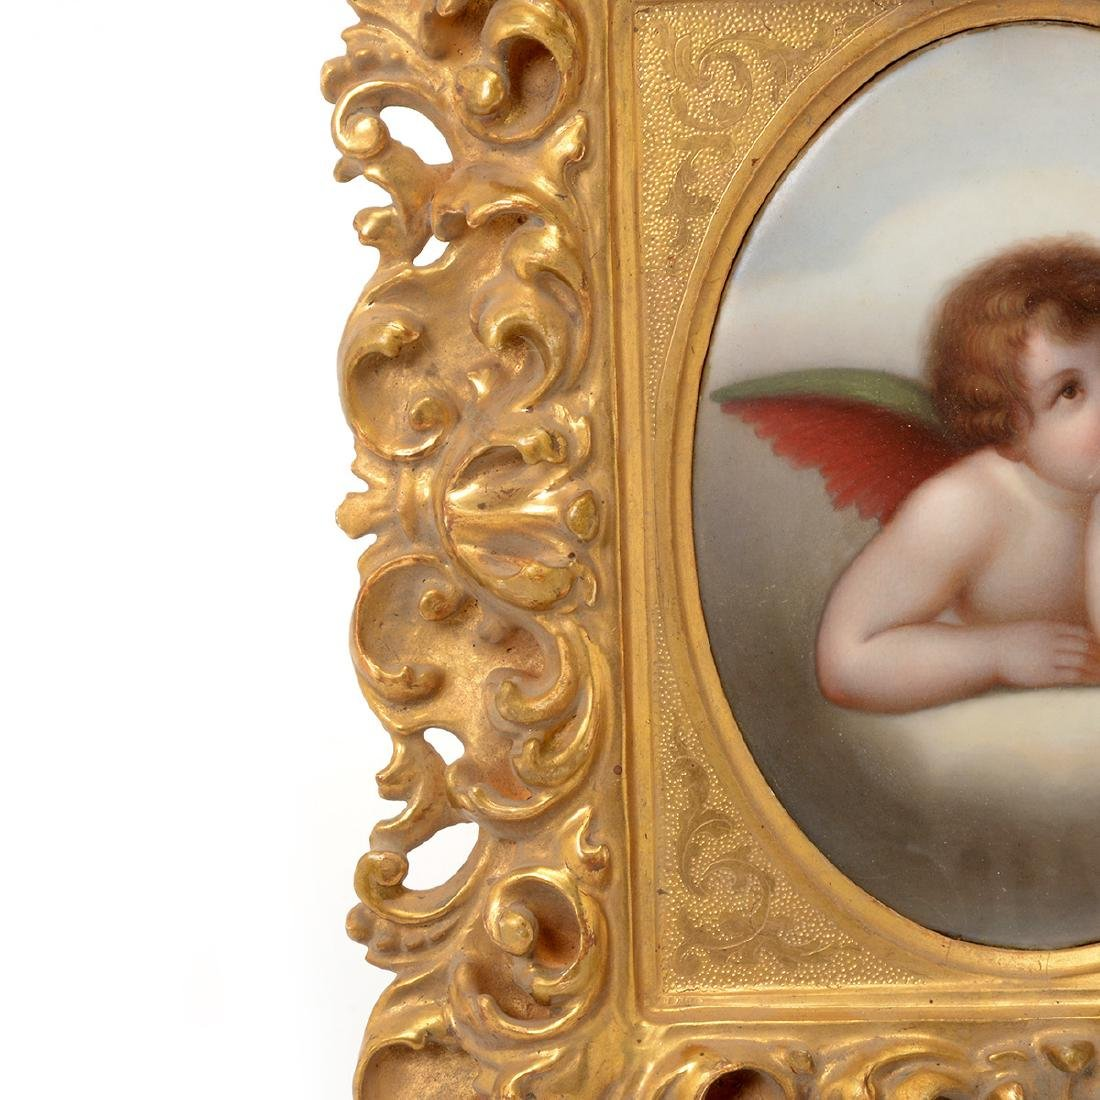 Two Italian Porcelain Plaques of Angels - 6